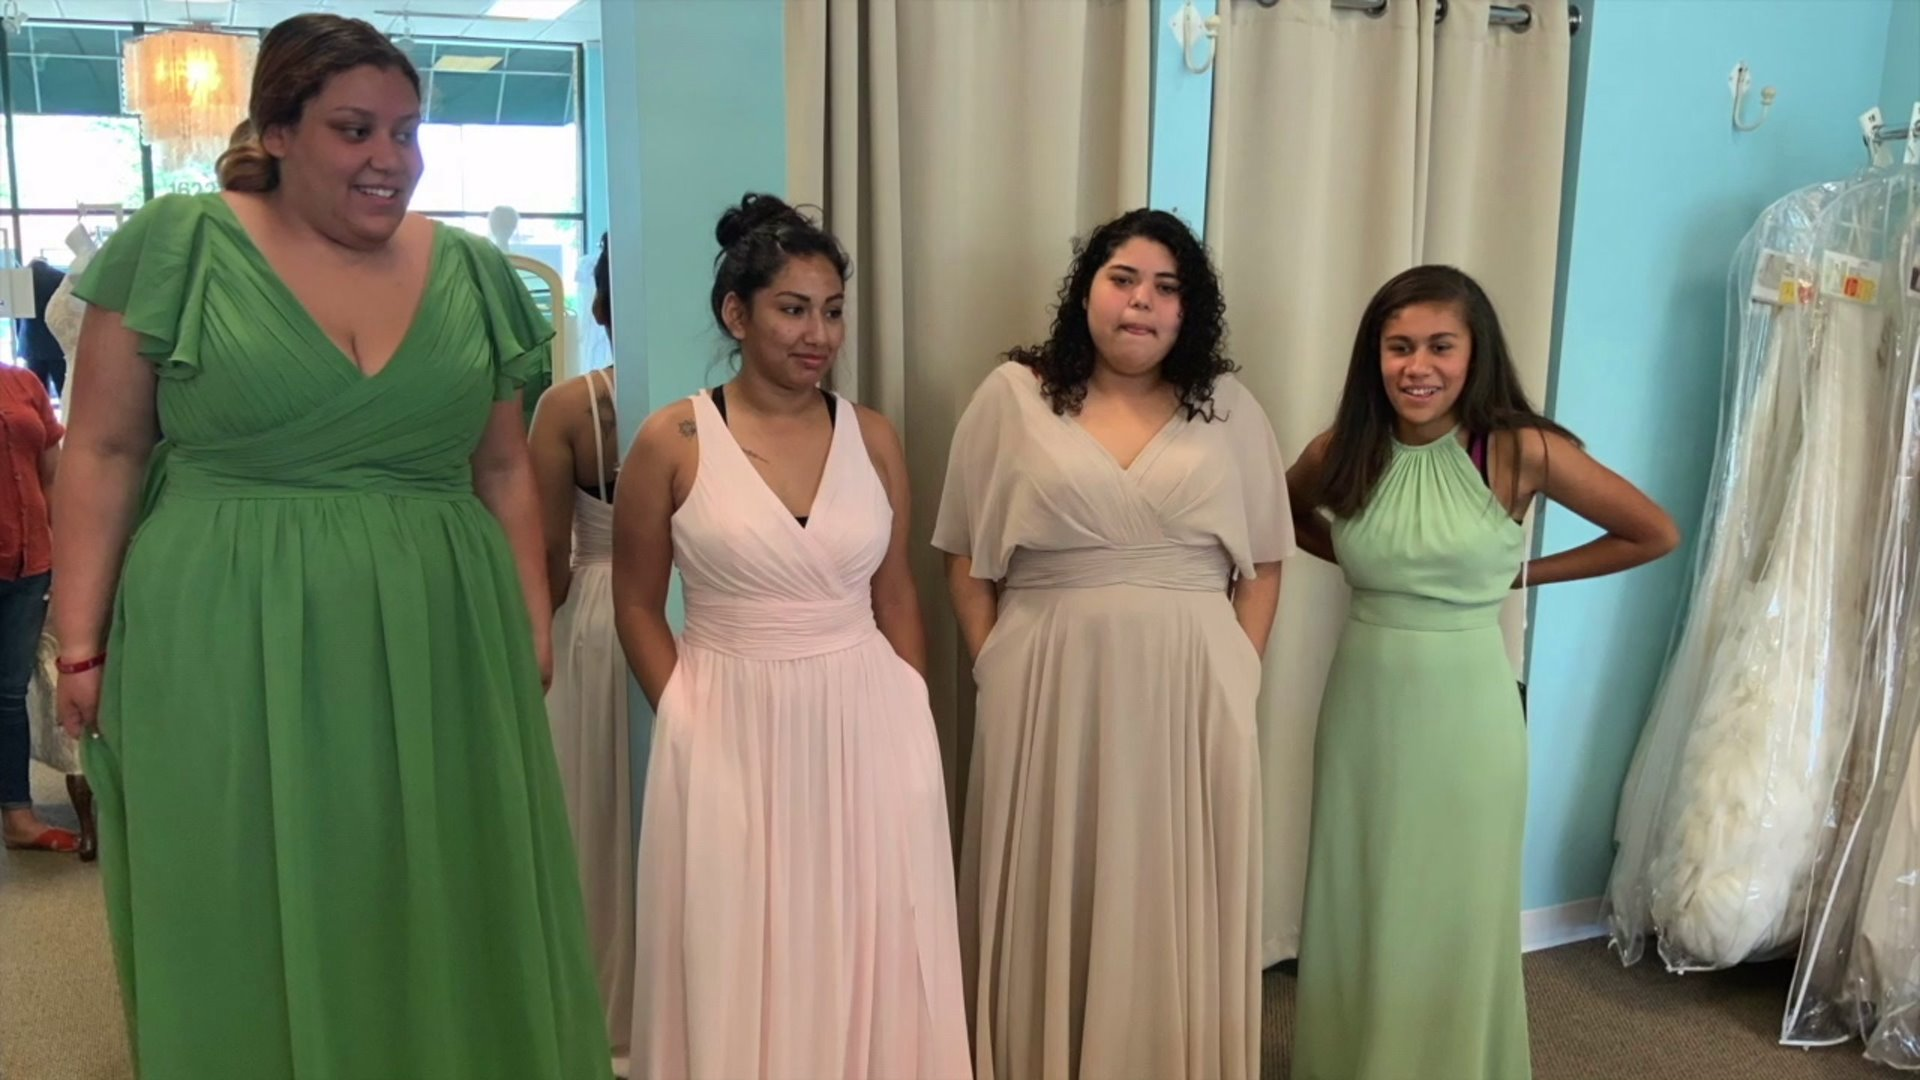 Family Upset After Greensboro Bridal Shop Closes Without